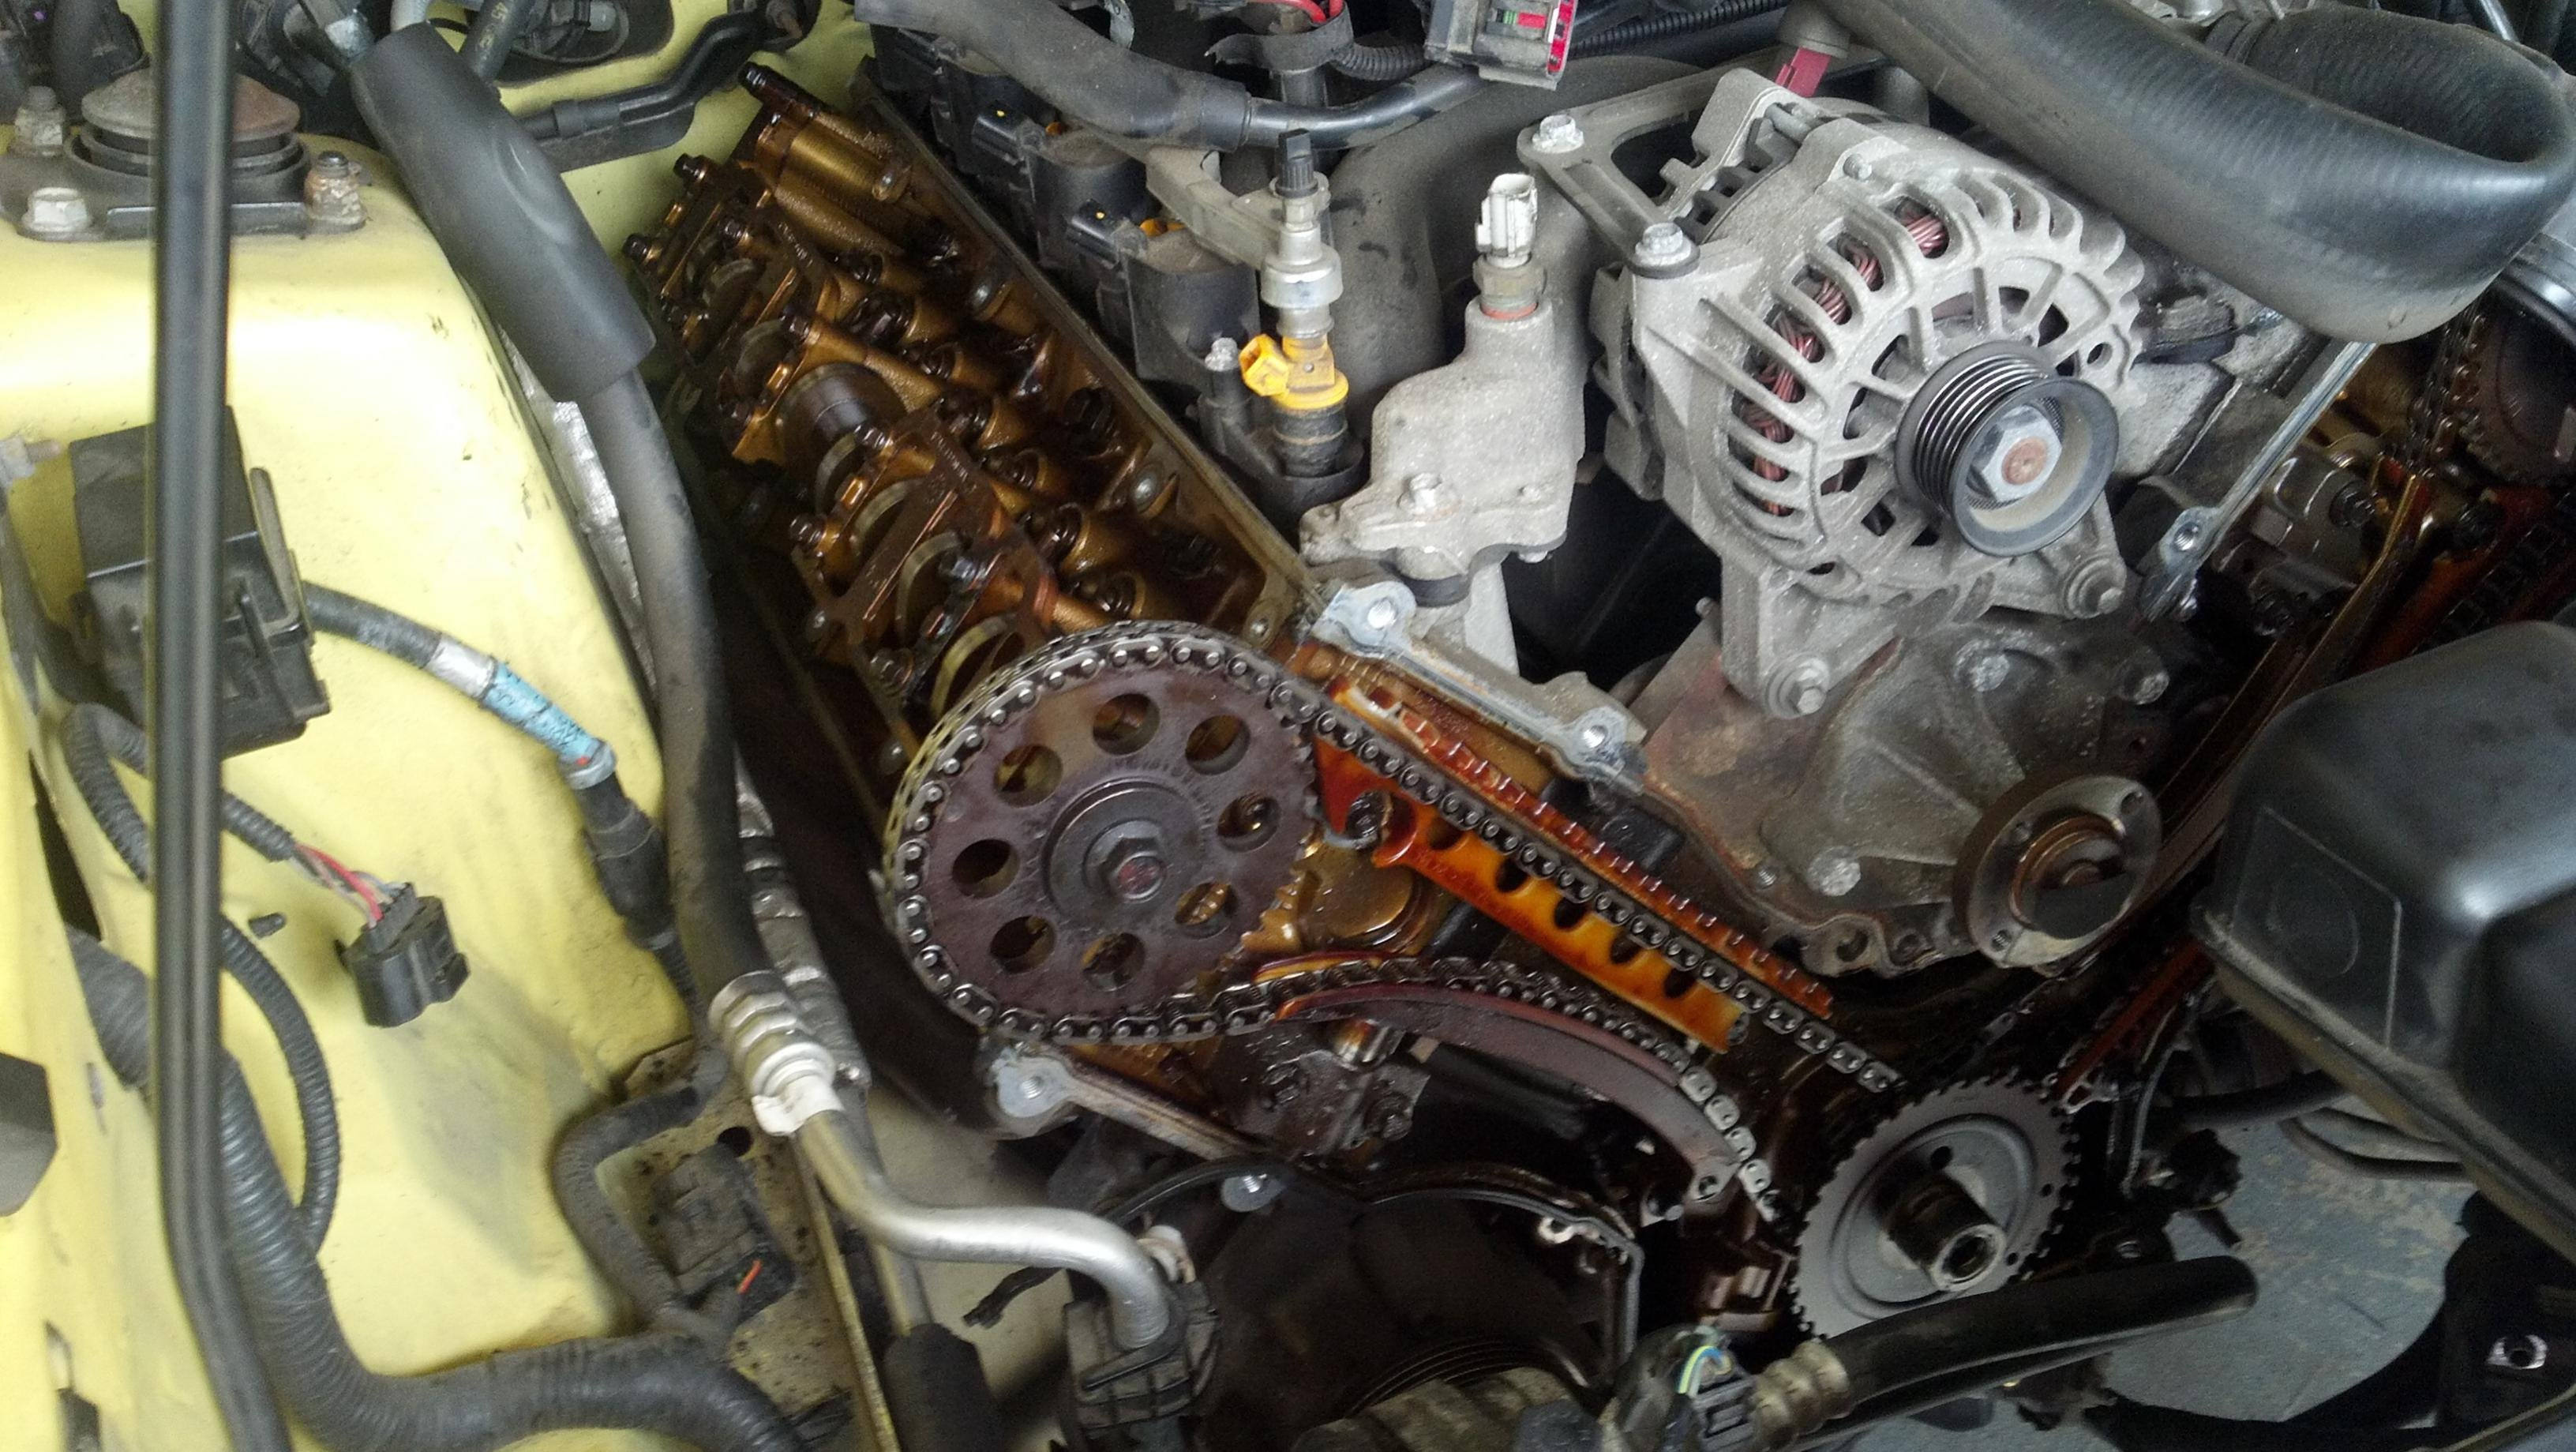 5 4l 3 valve engine diagram timing chain guide tensioner replaced ford mustang forum  timing chain guide tensioner replaced ford mustang forum